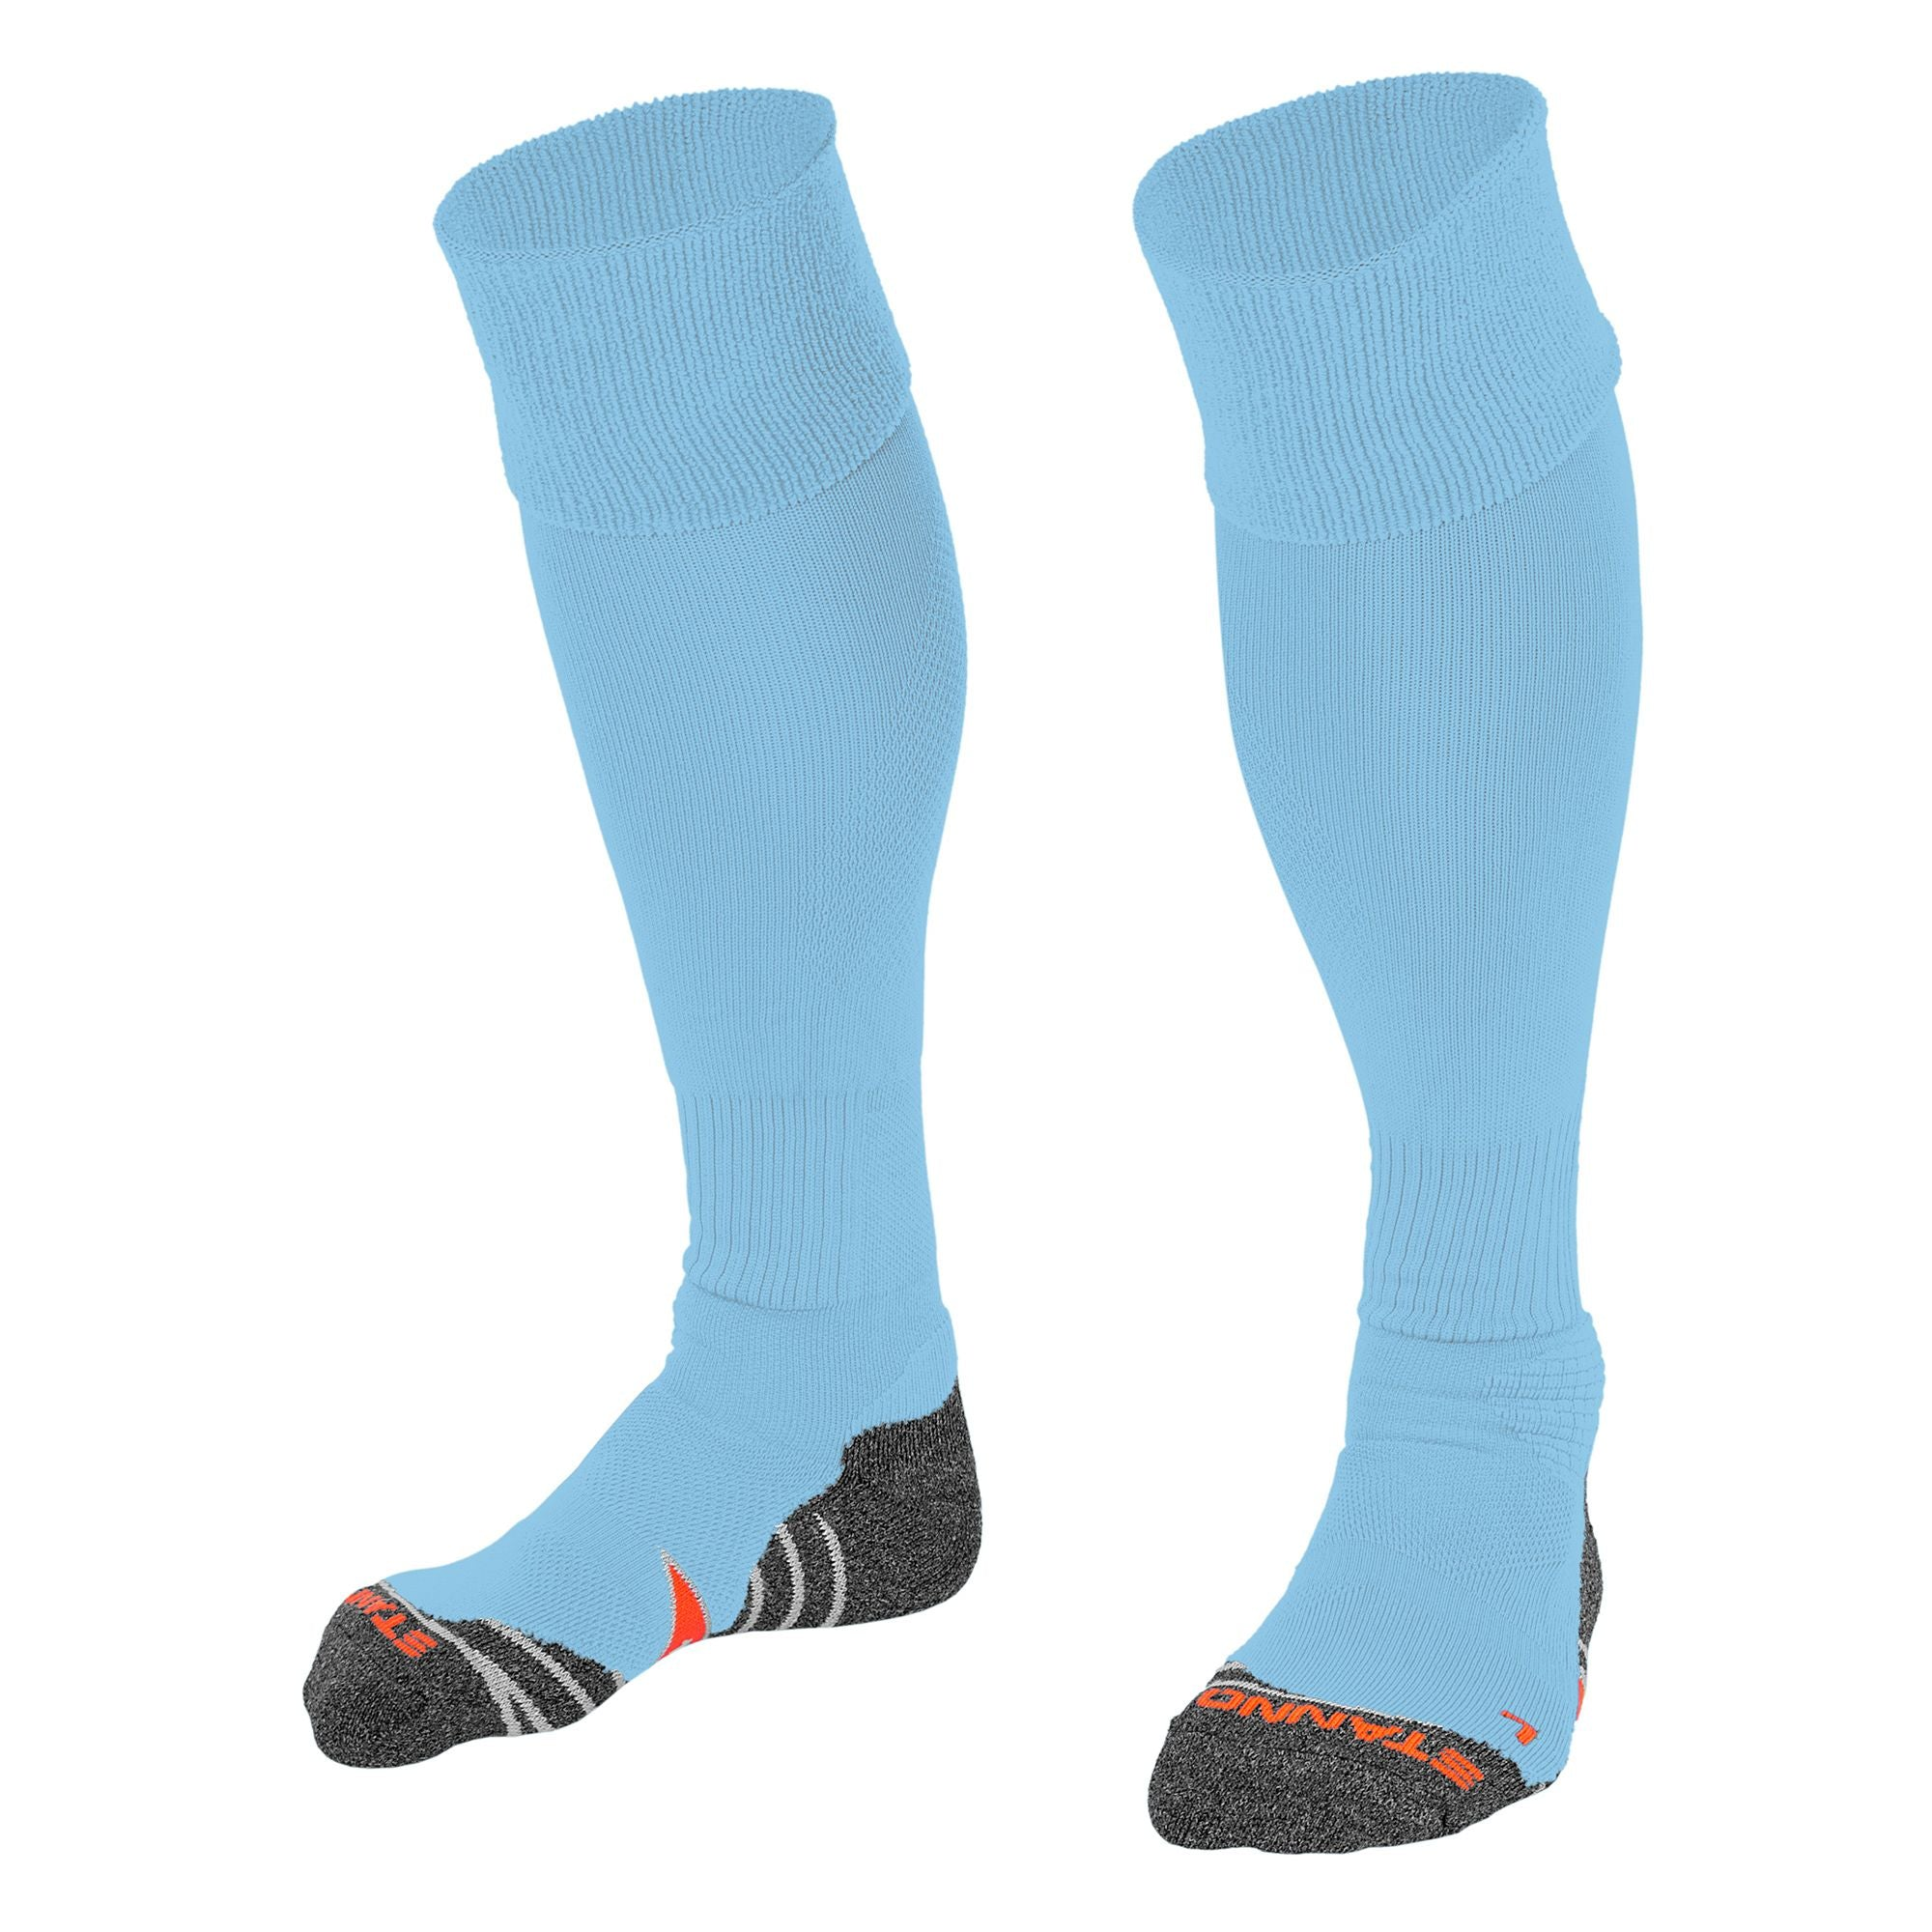 Stanno Uni Sock II football sock in sky blue with grey, white and orange sole